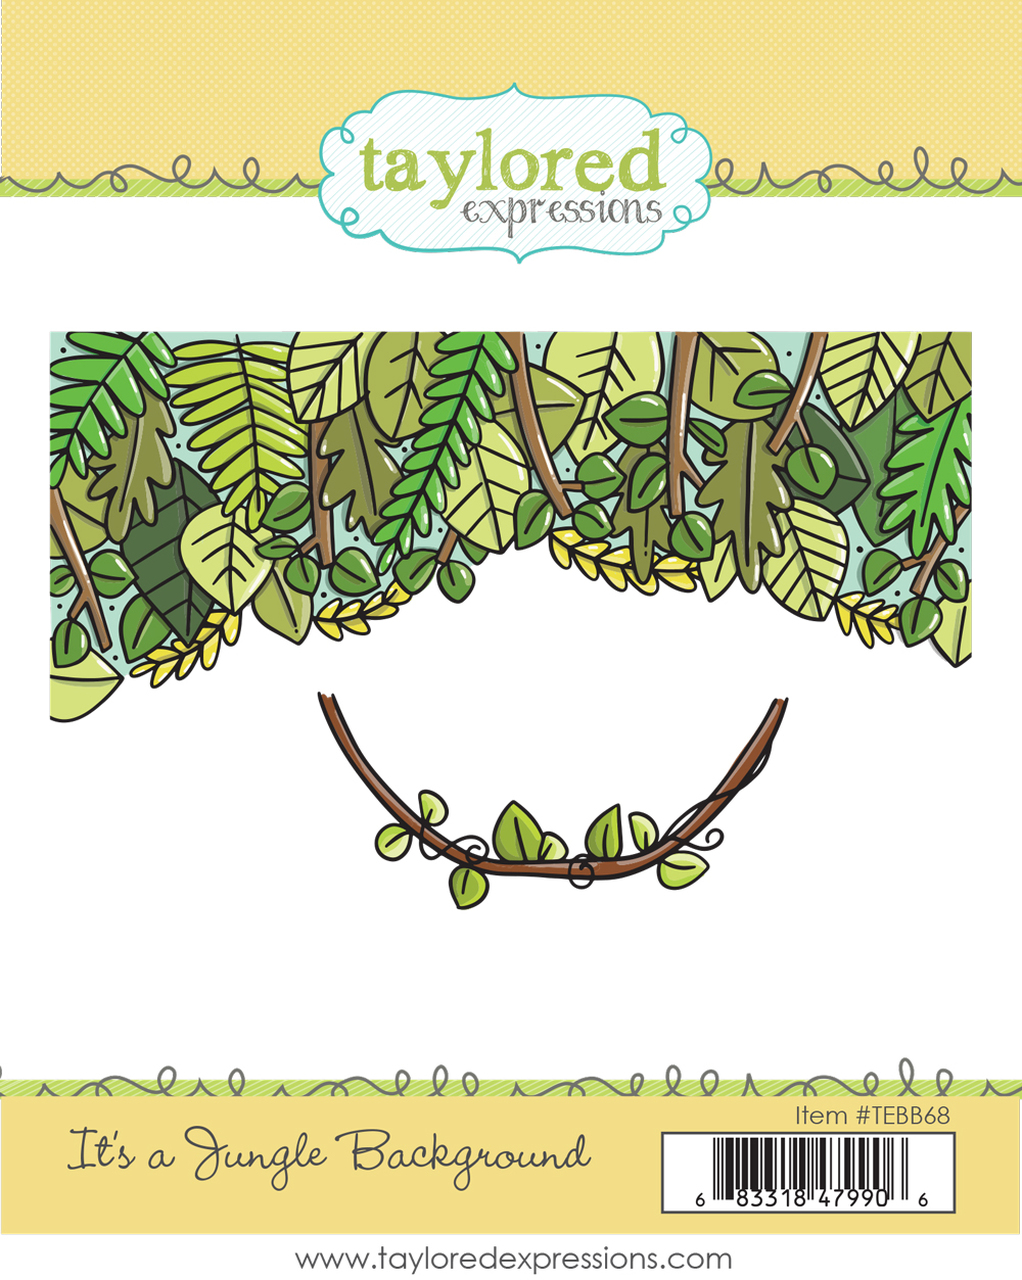 Taylored Expression - It's a Jungle Background